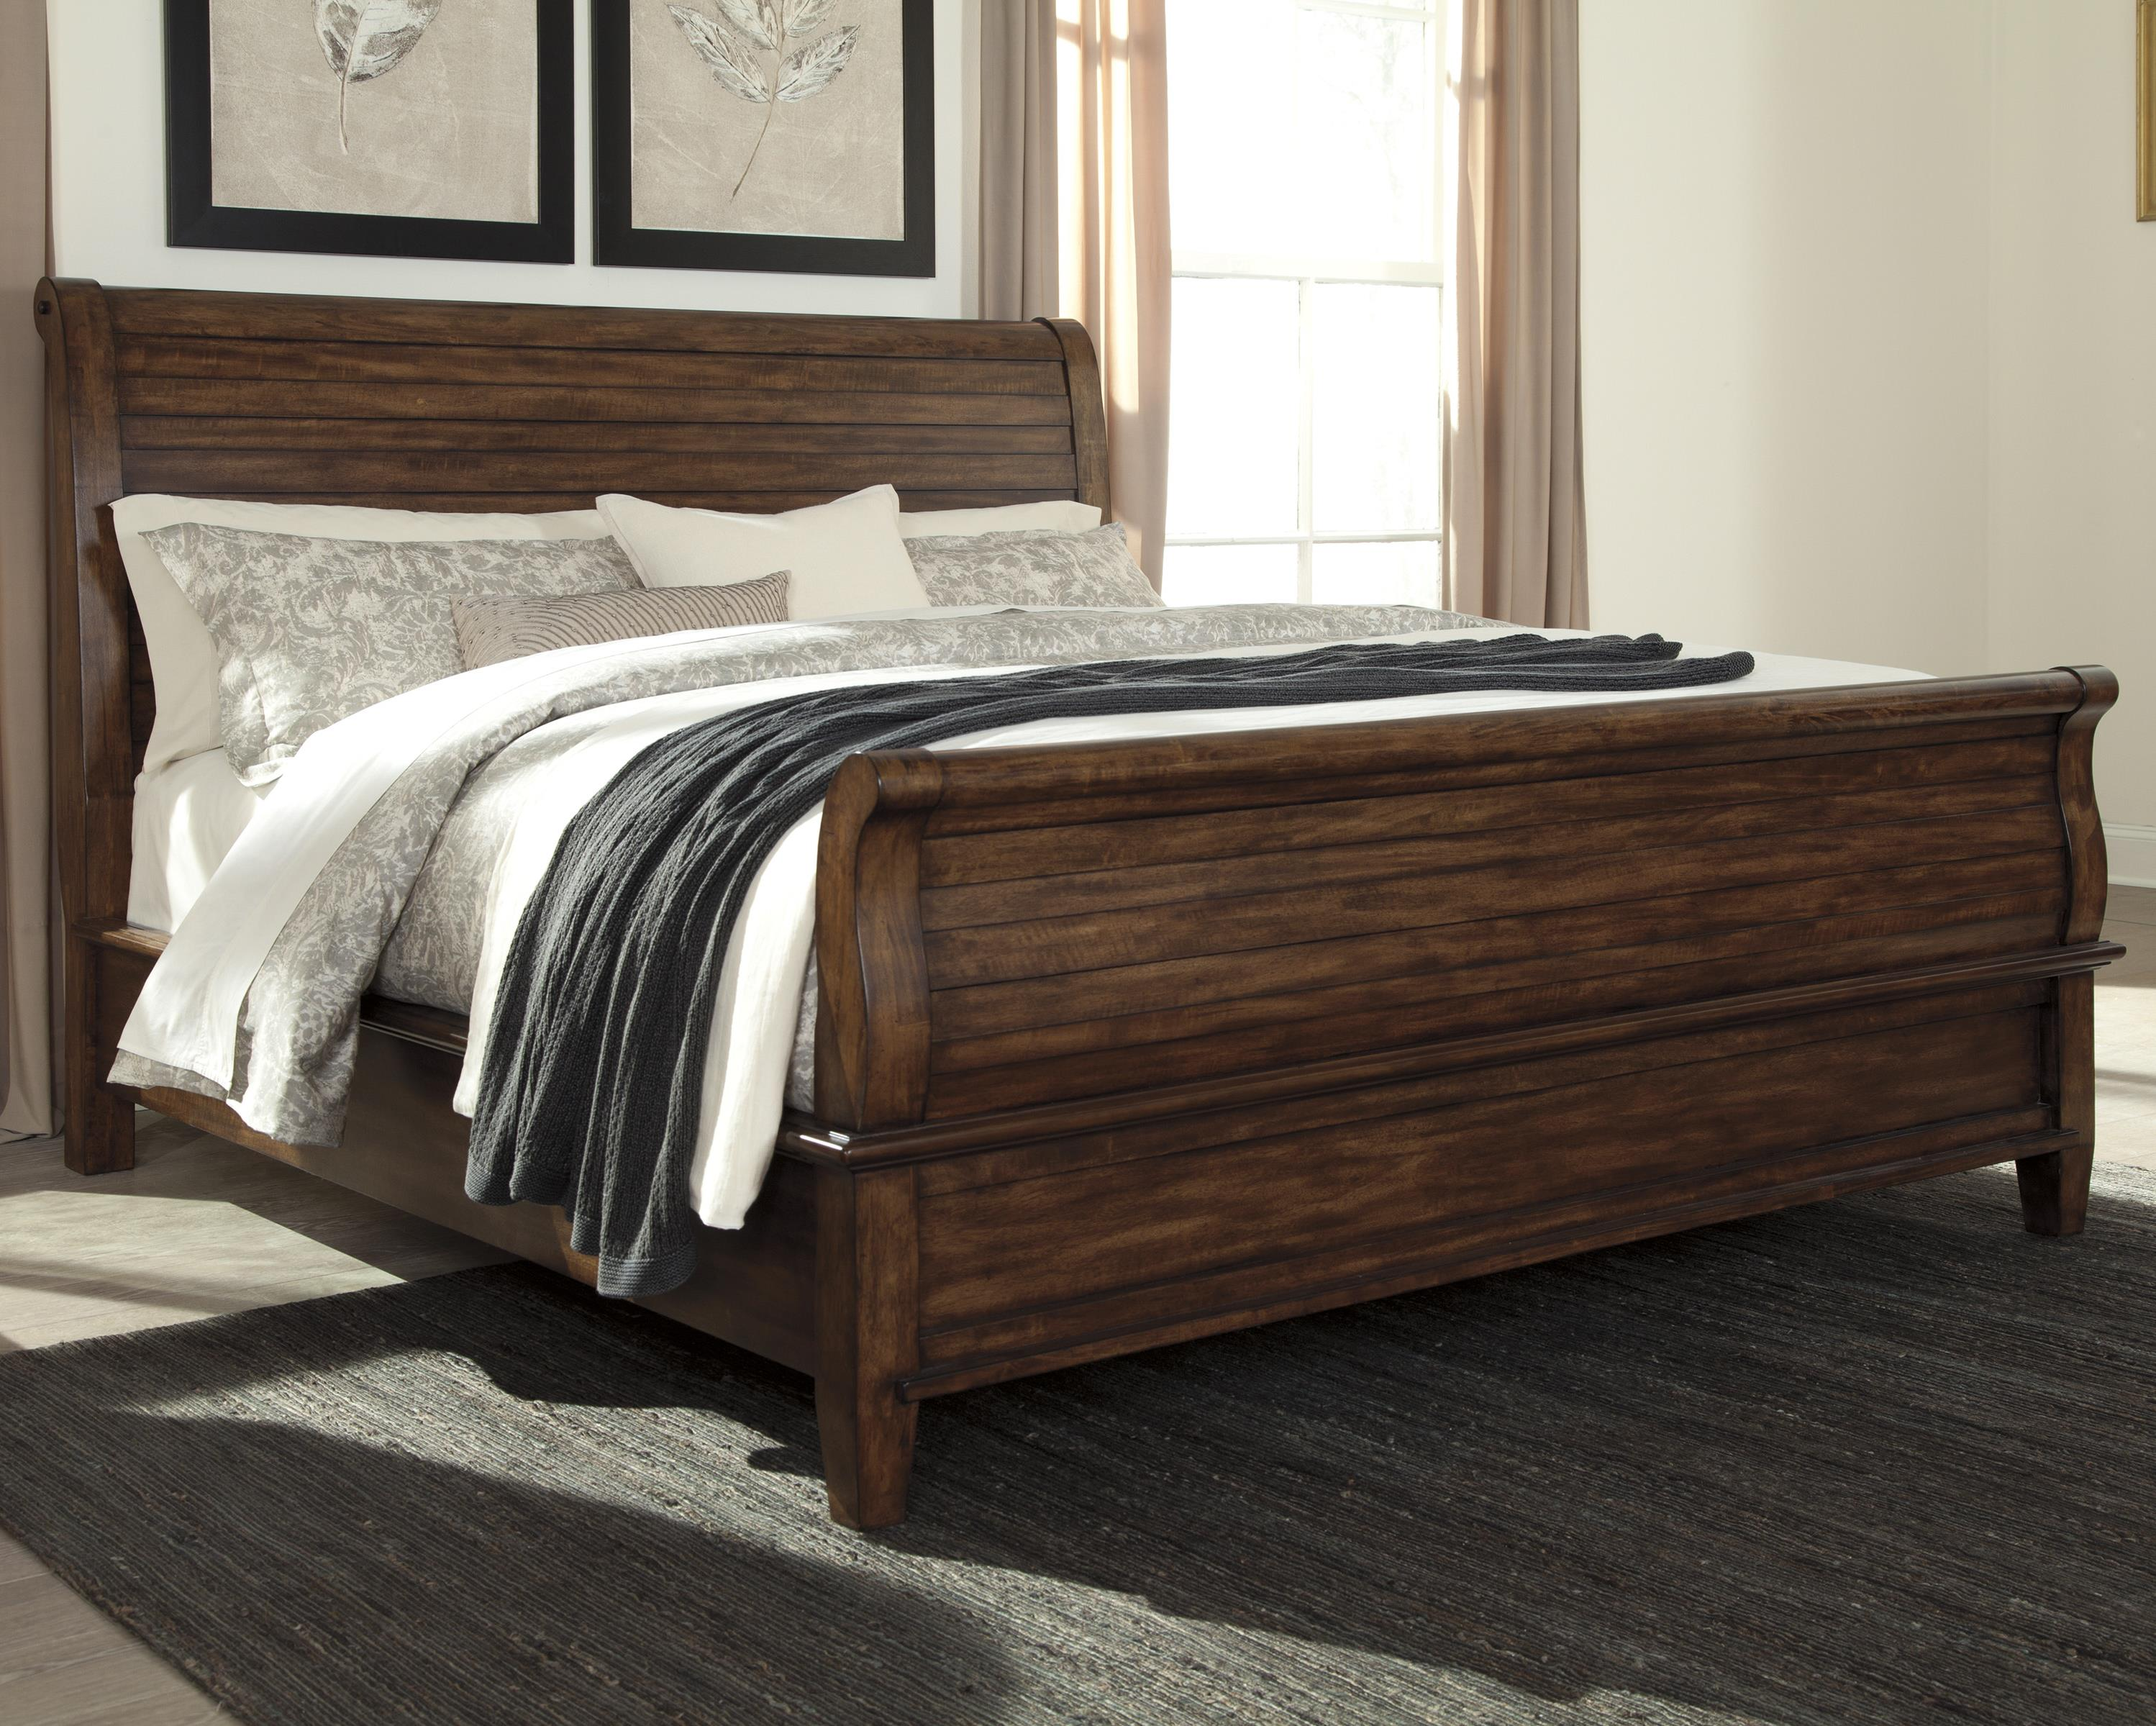 Signature Design by Ashley Chaddinfield King Sleigh Bed - Item Number: B648-78+76+97